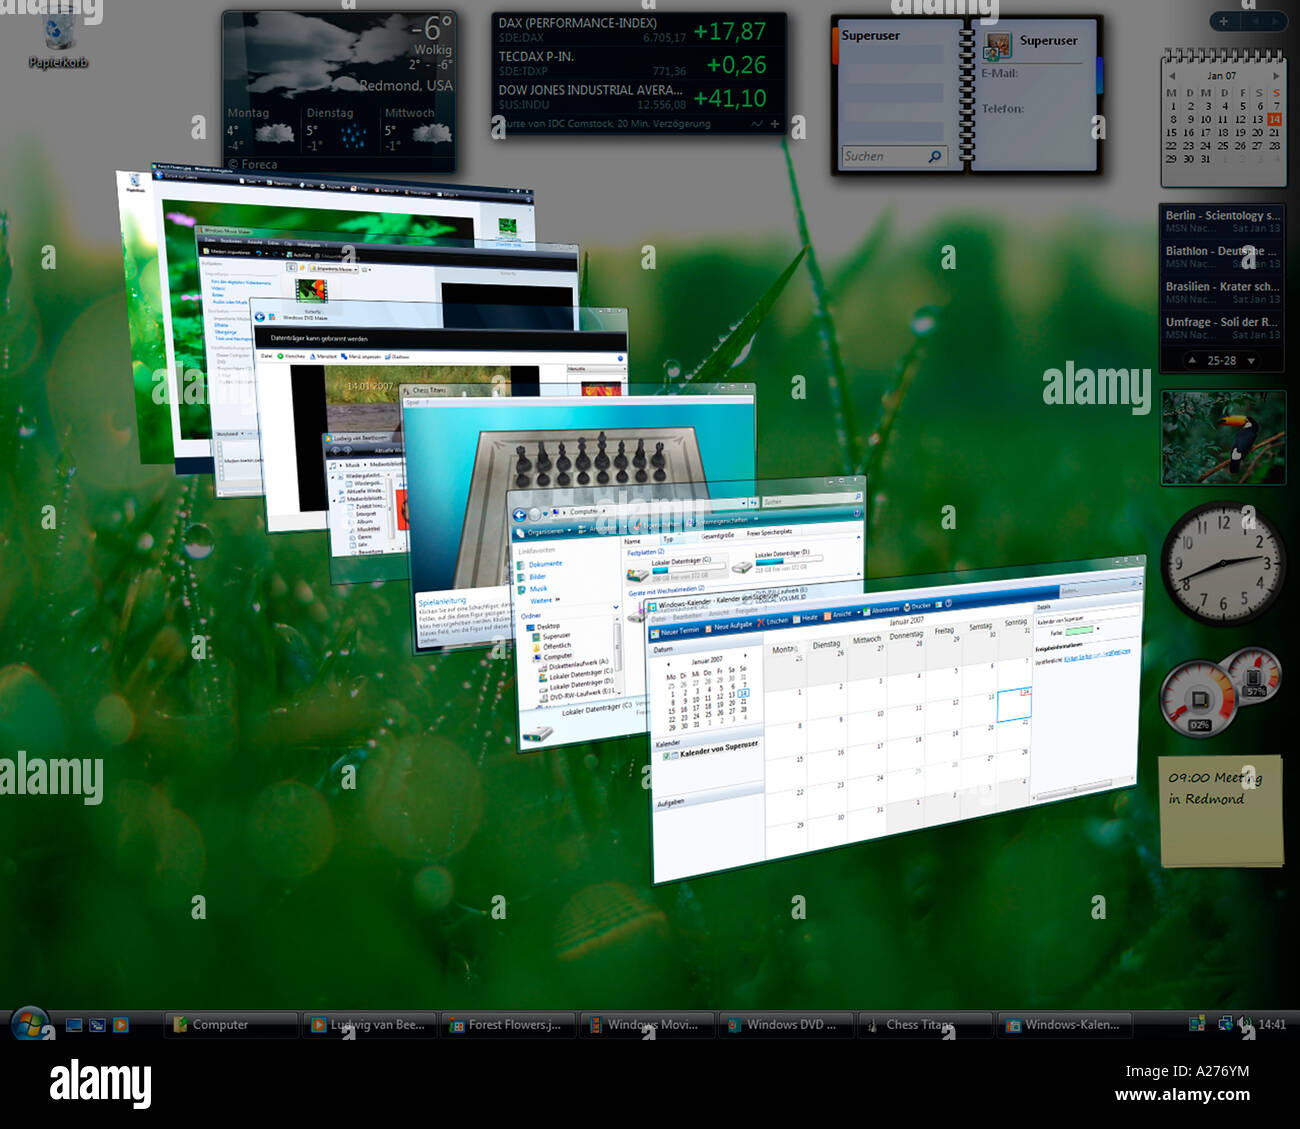 Microsoft Windows Vista, german version, desktop with perspectively arranged applications, screenshot - Stock Image